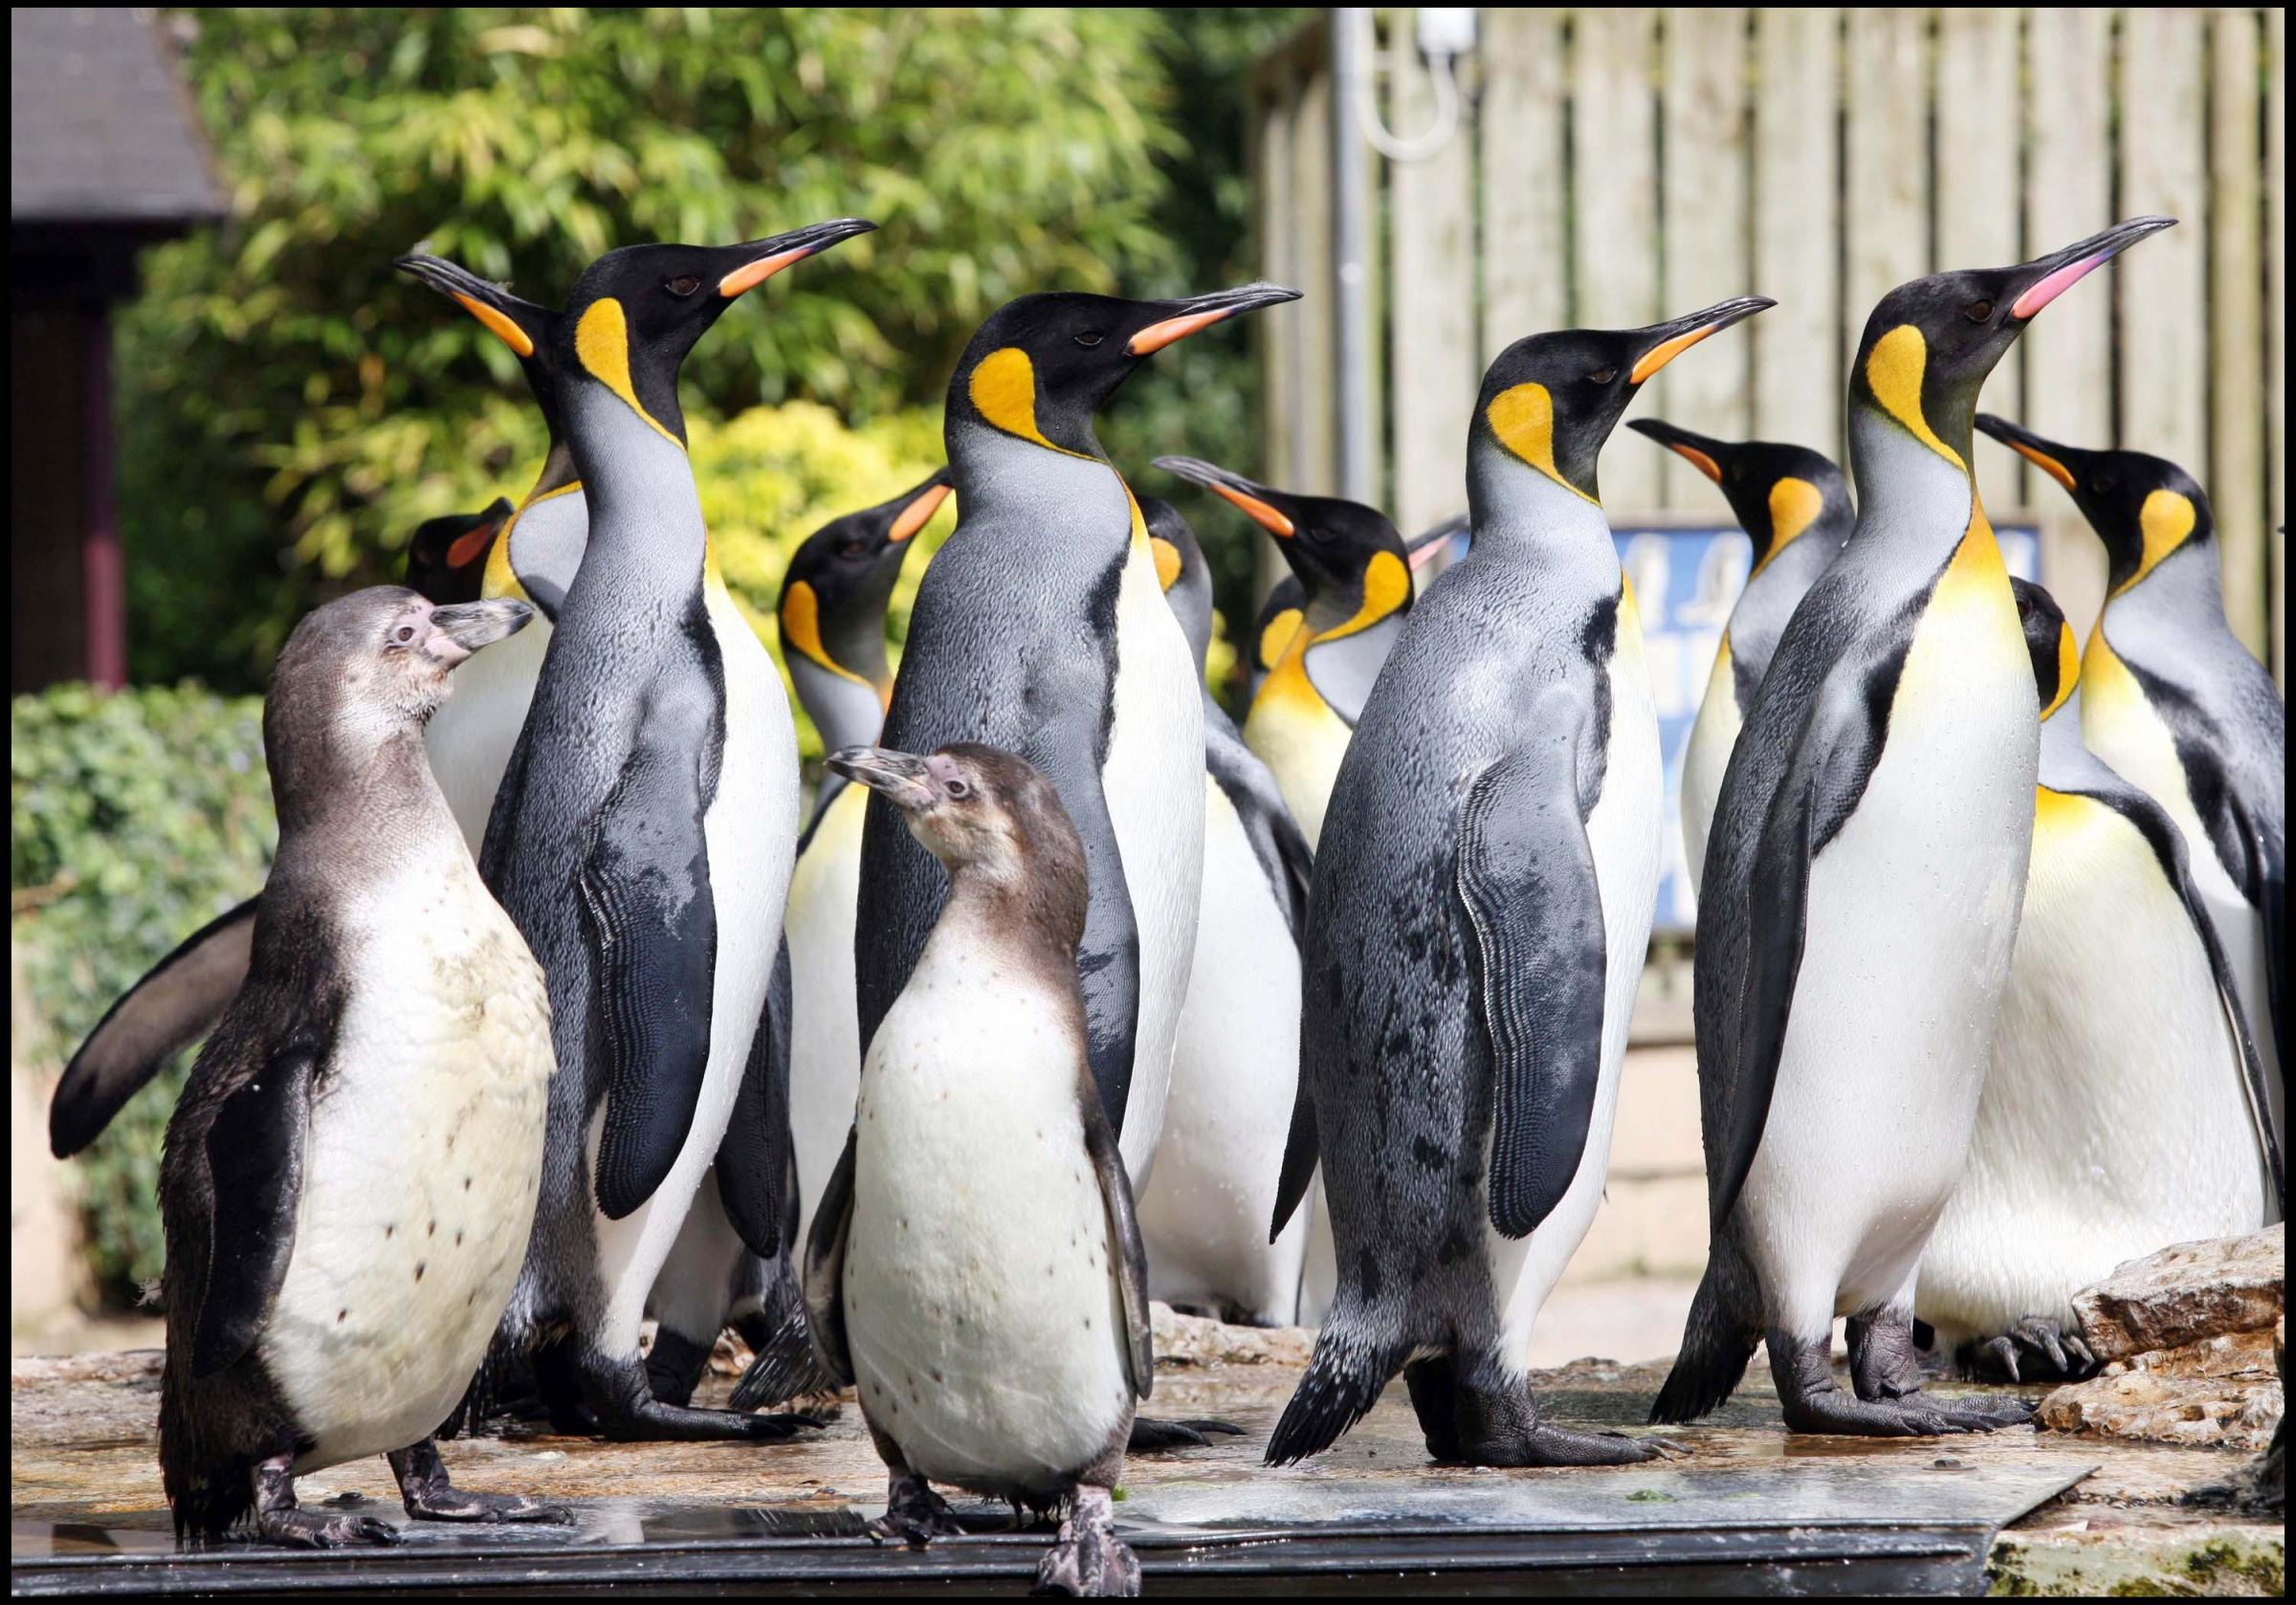 RARE: The king penguins at Birdland are the only colony in the UK.